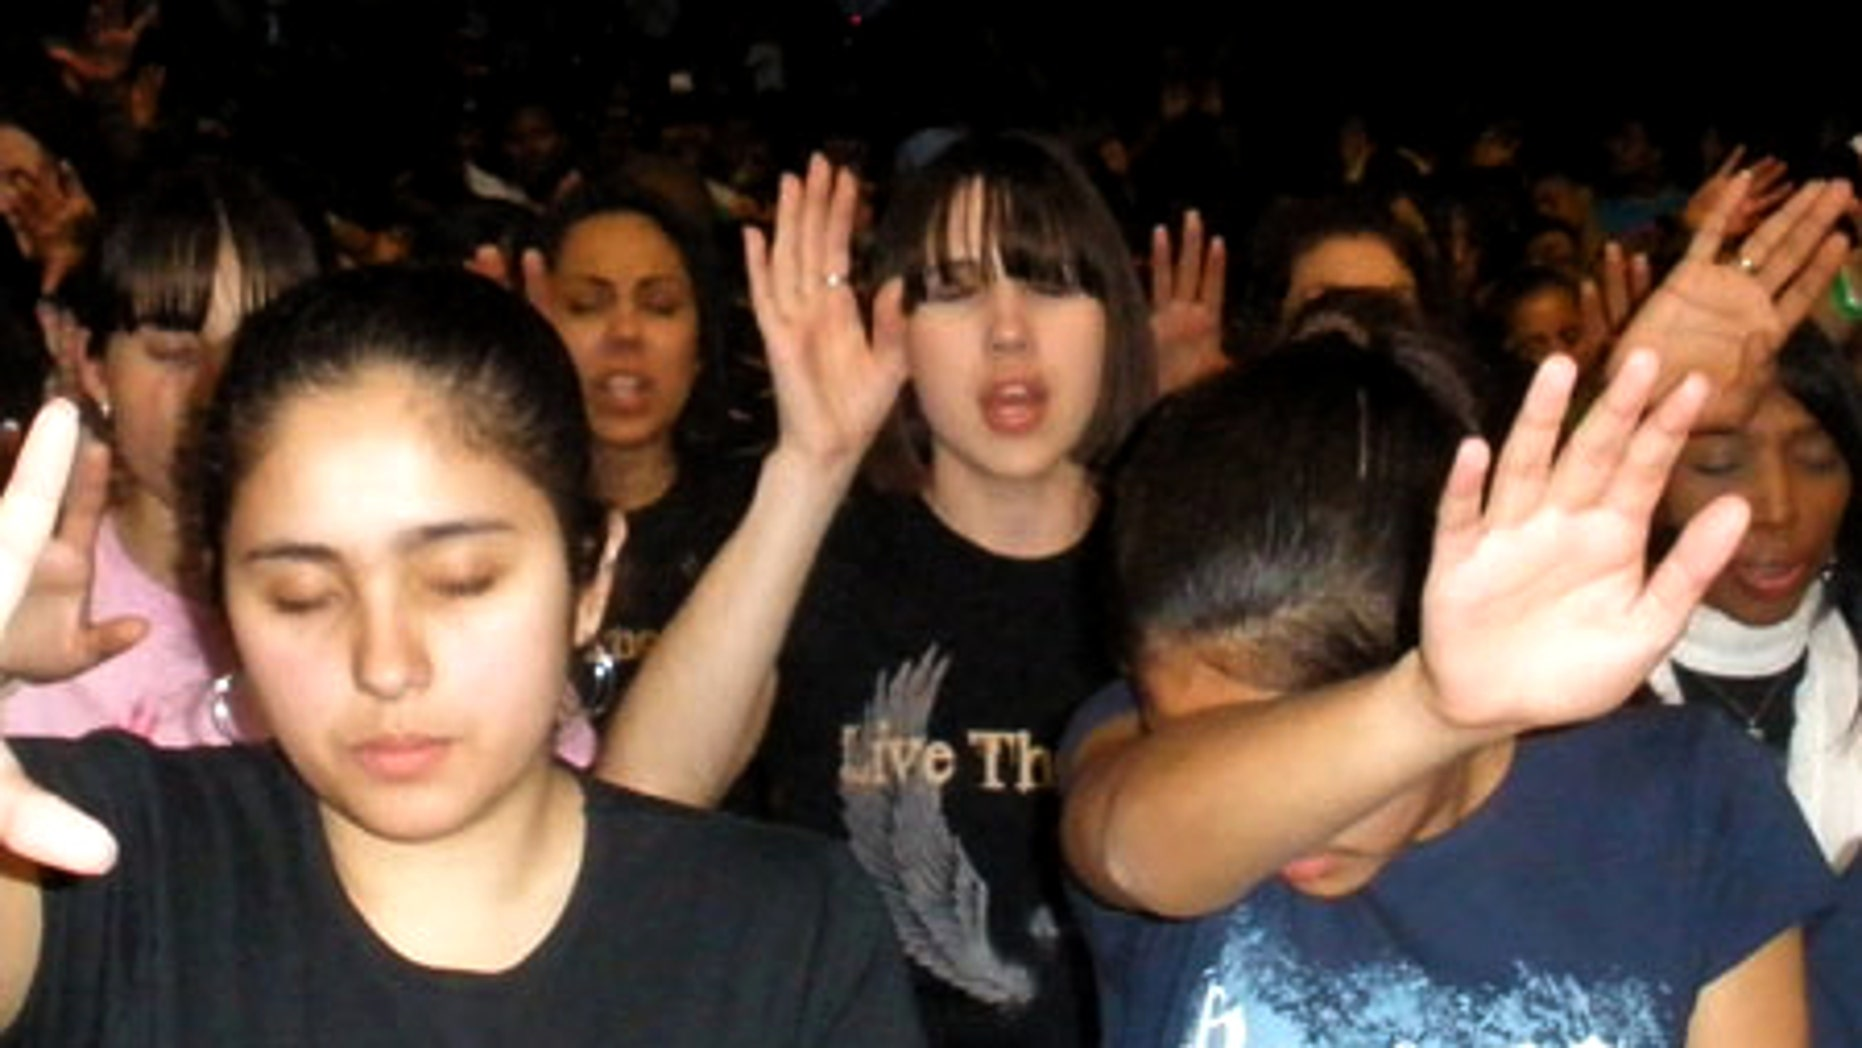 April 18: Concertgoers reach their hands up in prayer during a moment of worship at at the IZOD Center in New Jersey.